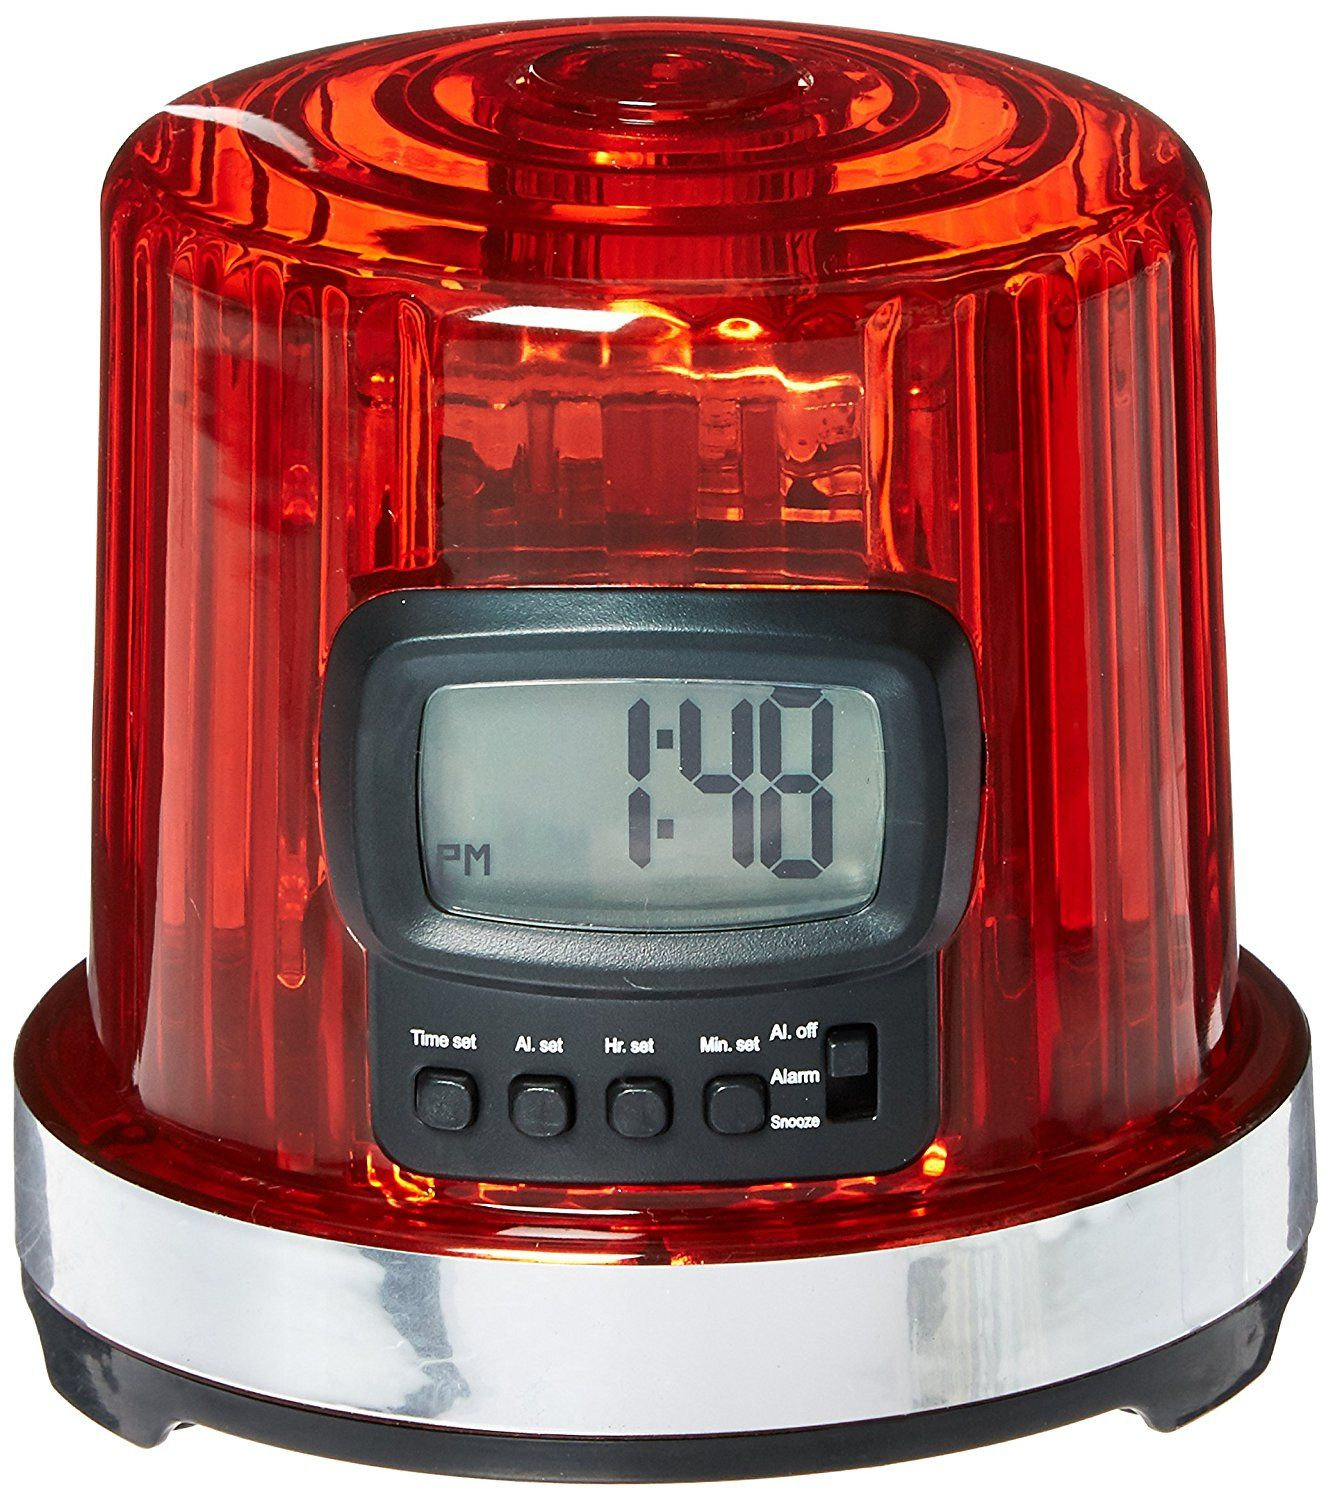 Nhl League Logo The Goal Light Alarm Clock Small Black Read More Reviews Of The Product By Visiting The Link On The Im Light Alarm Clock Clock Alarm Clock